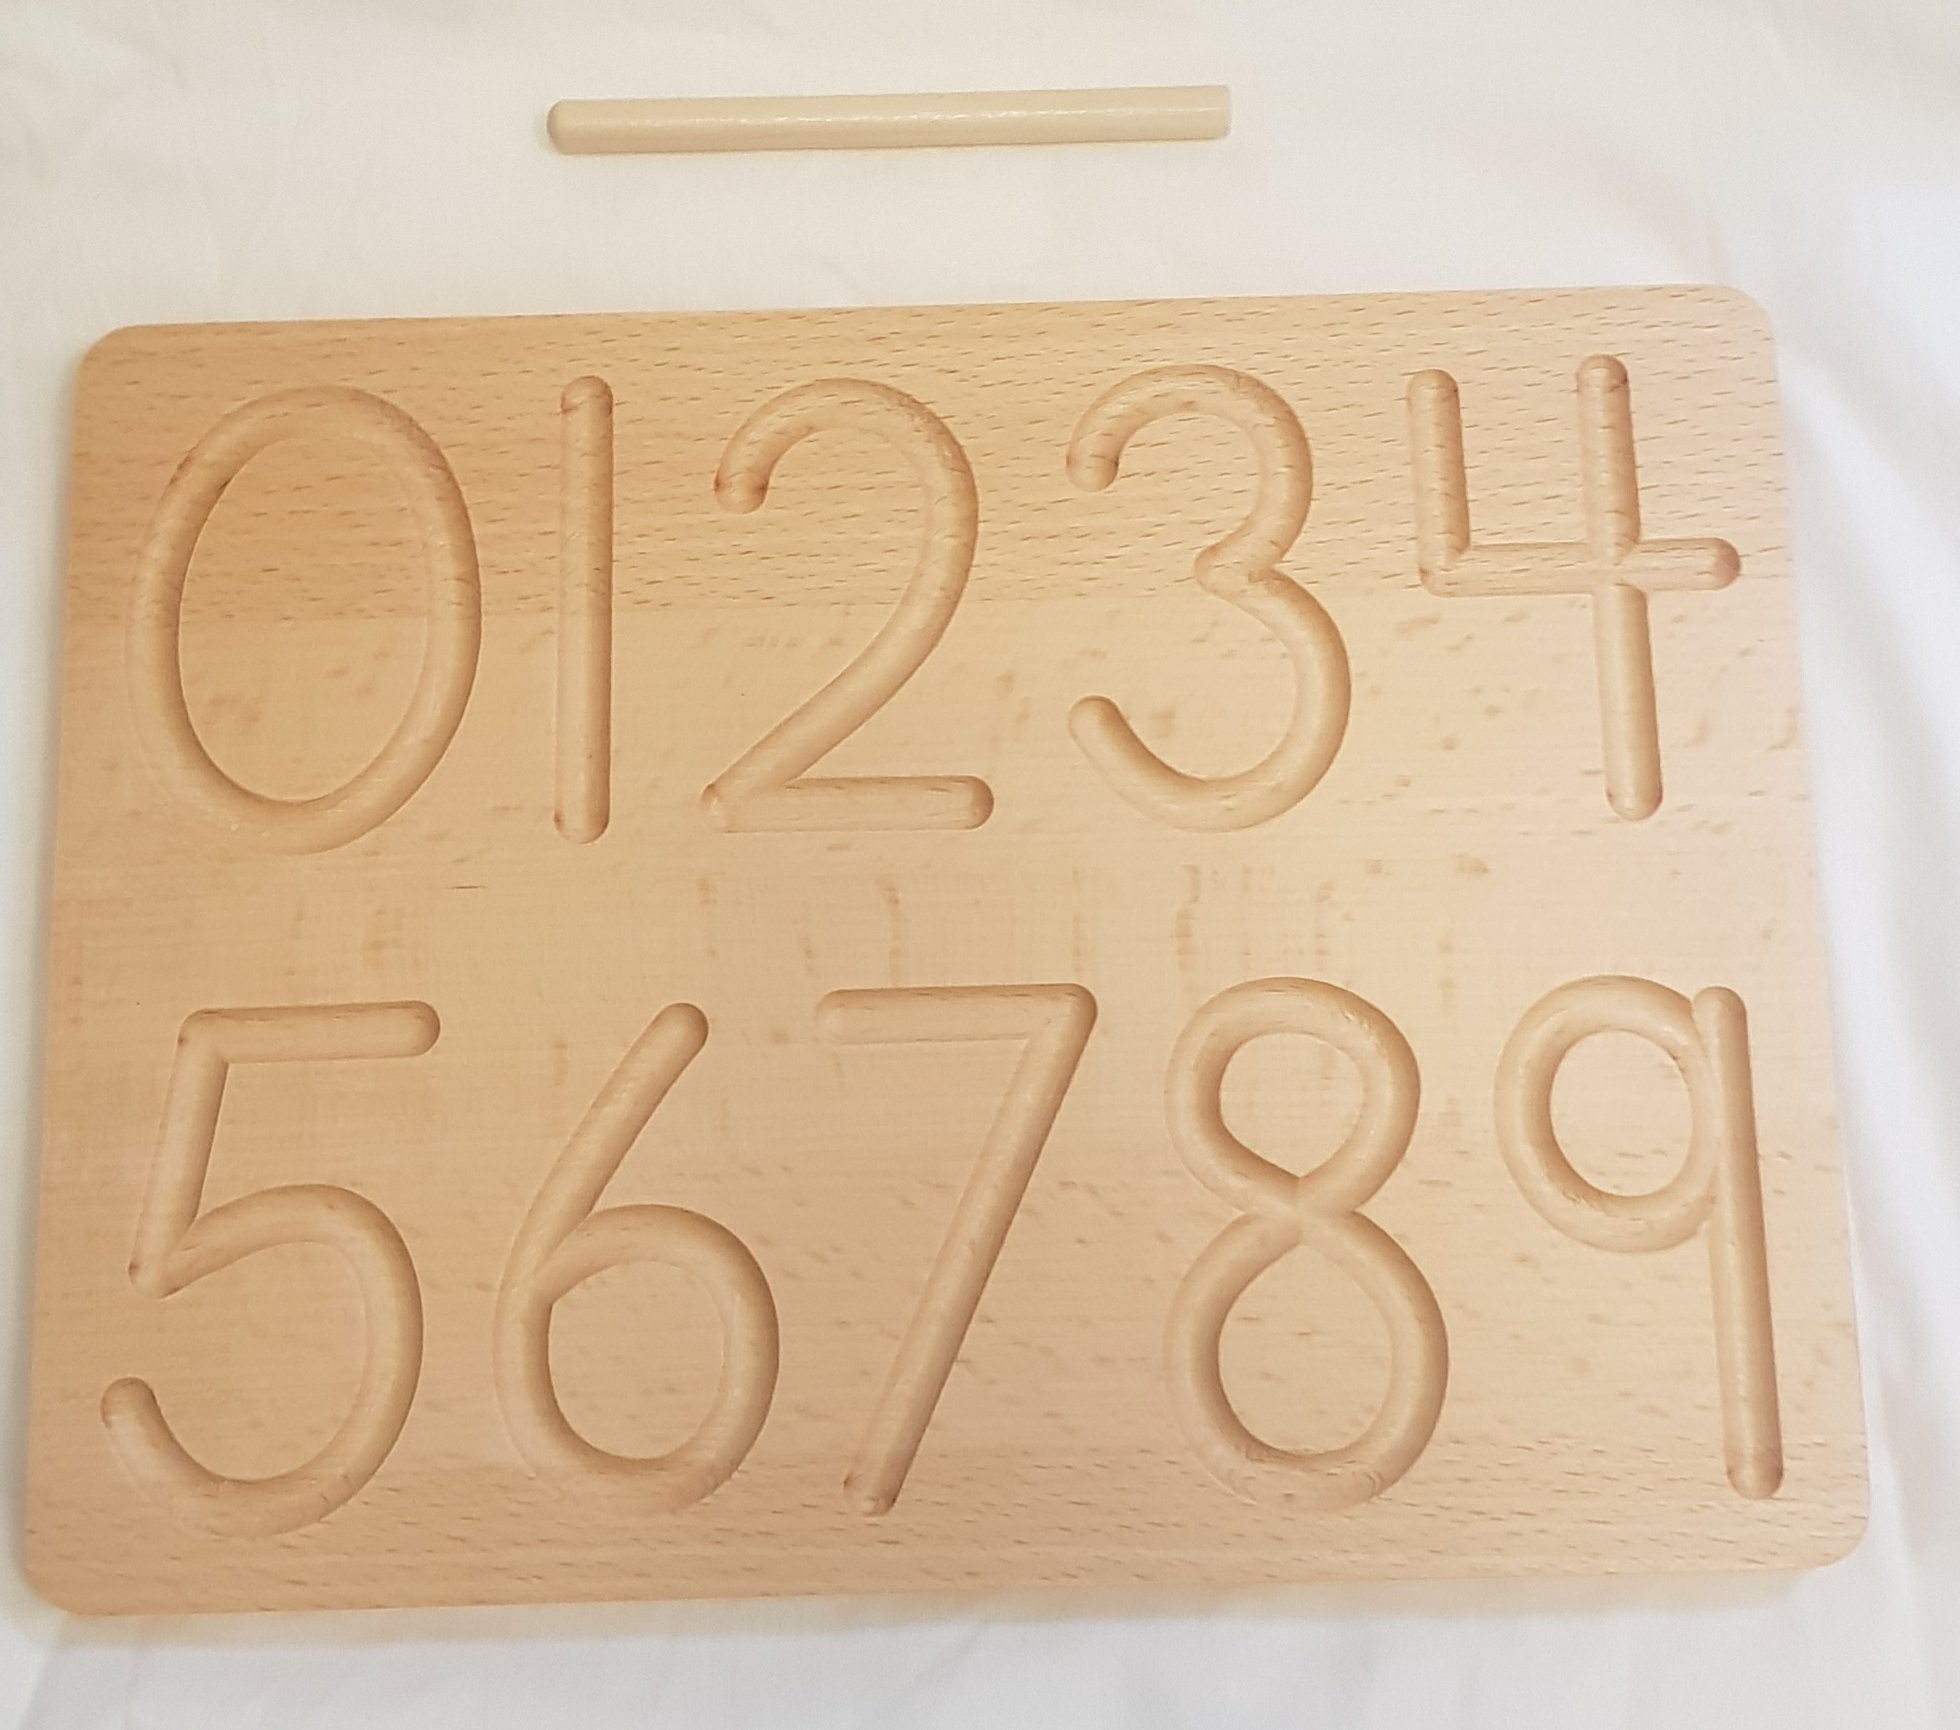 WOODEN NUMBERS - 0 - 9 TRACING BOARD